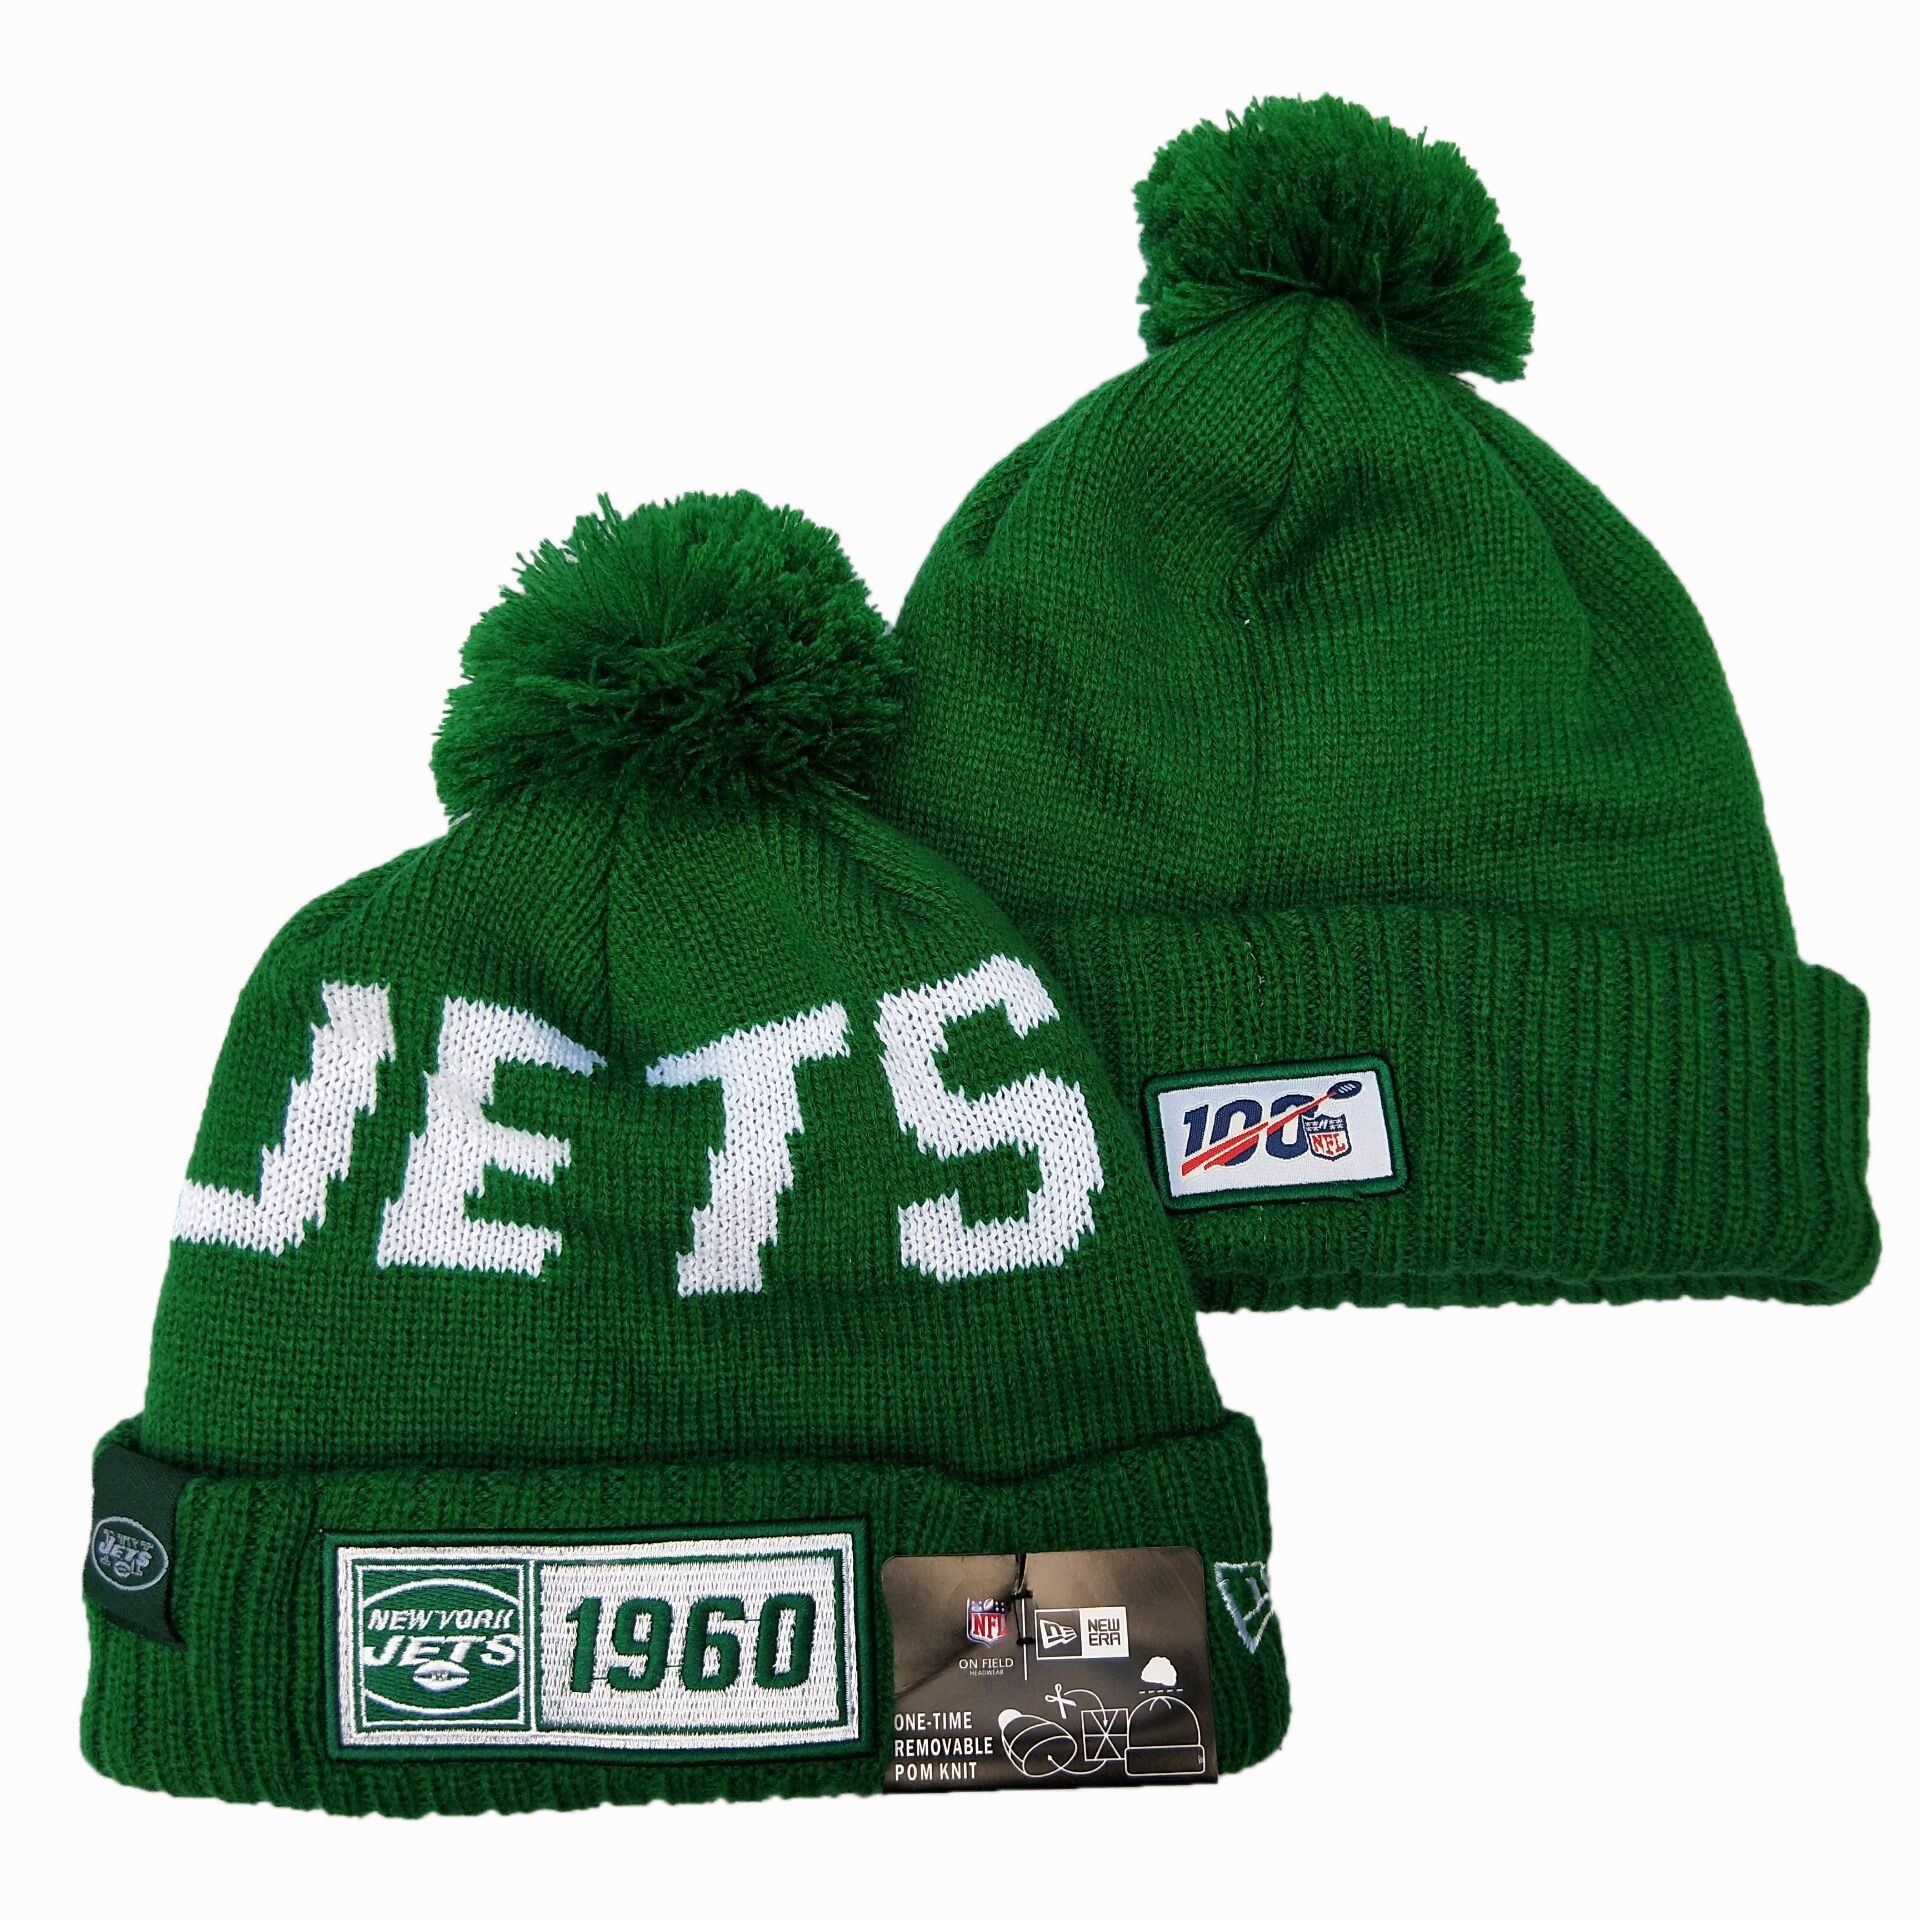 NFL New York Jets New Era 2019 Sideline Road Reverse Sport Knit Hats 016